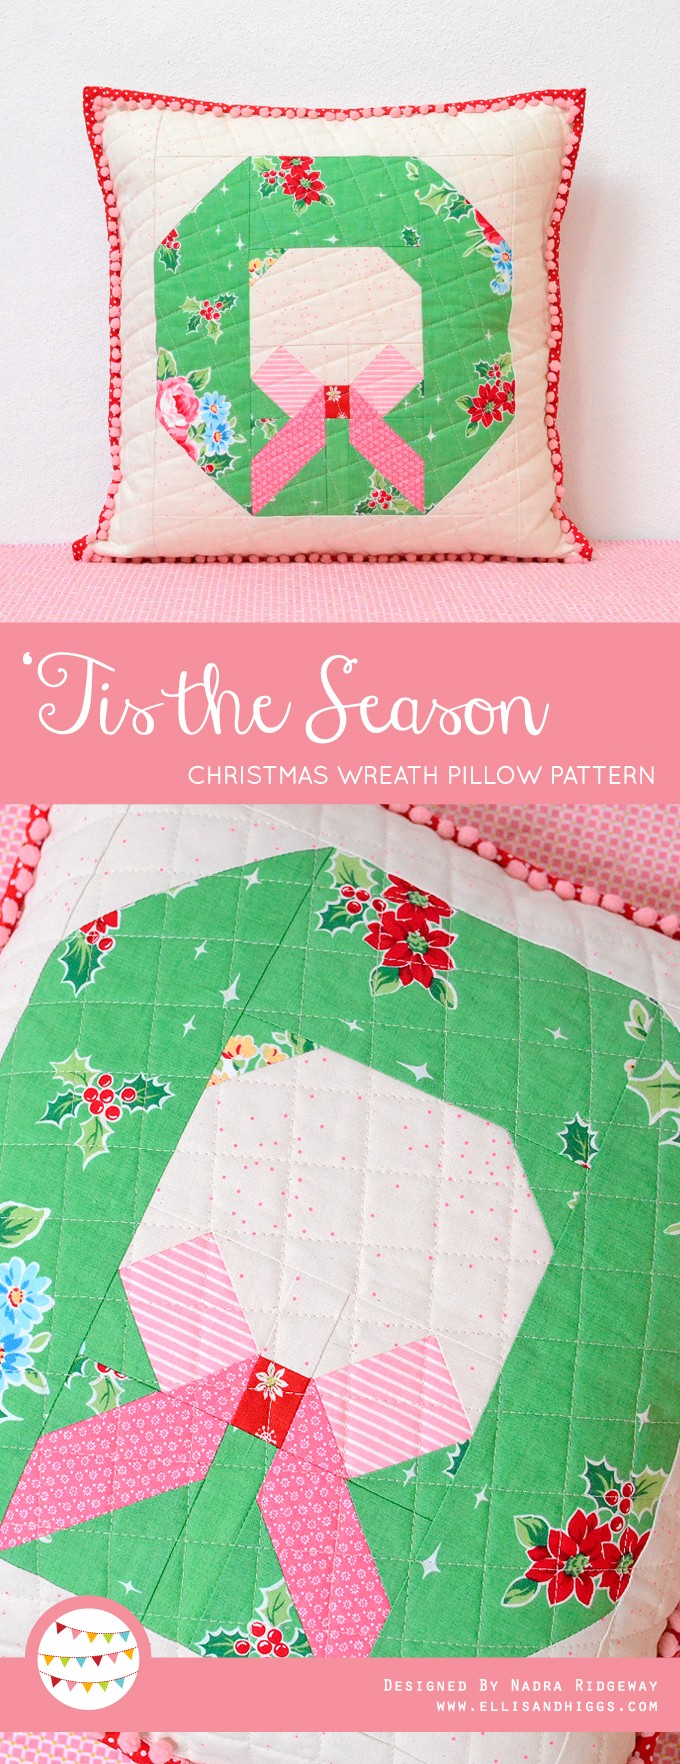 Christmas Wreath Pillow Pattern by Nadra Ridgeway